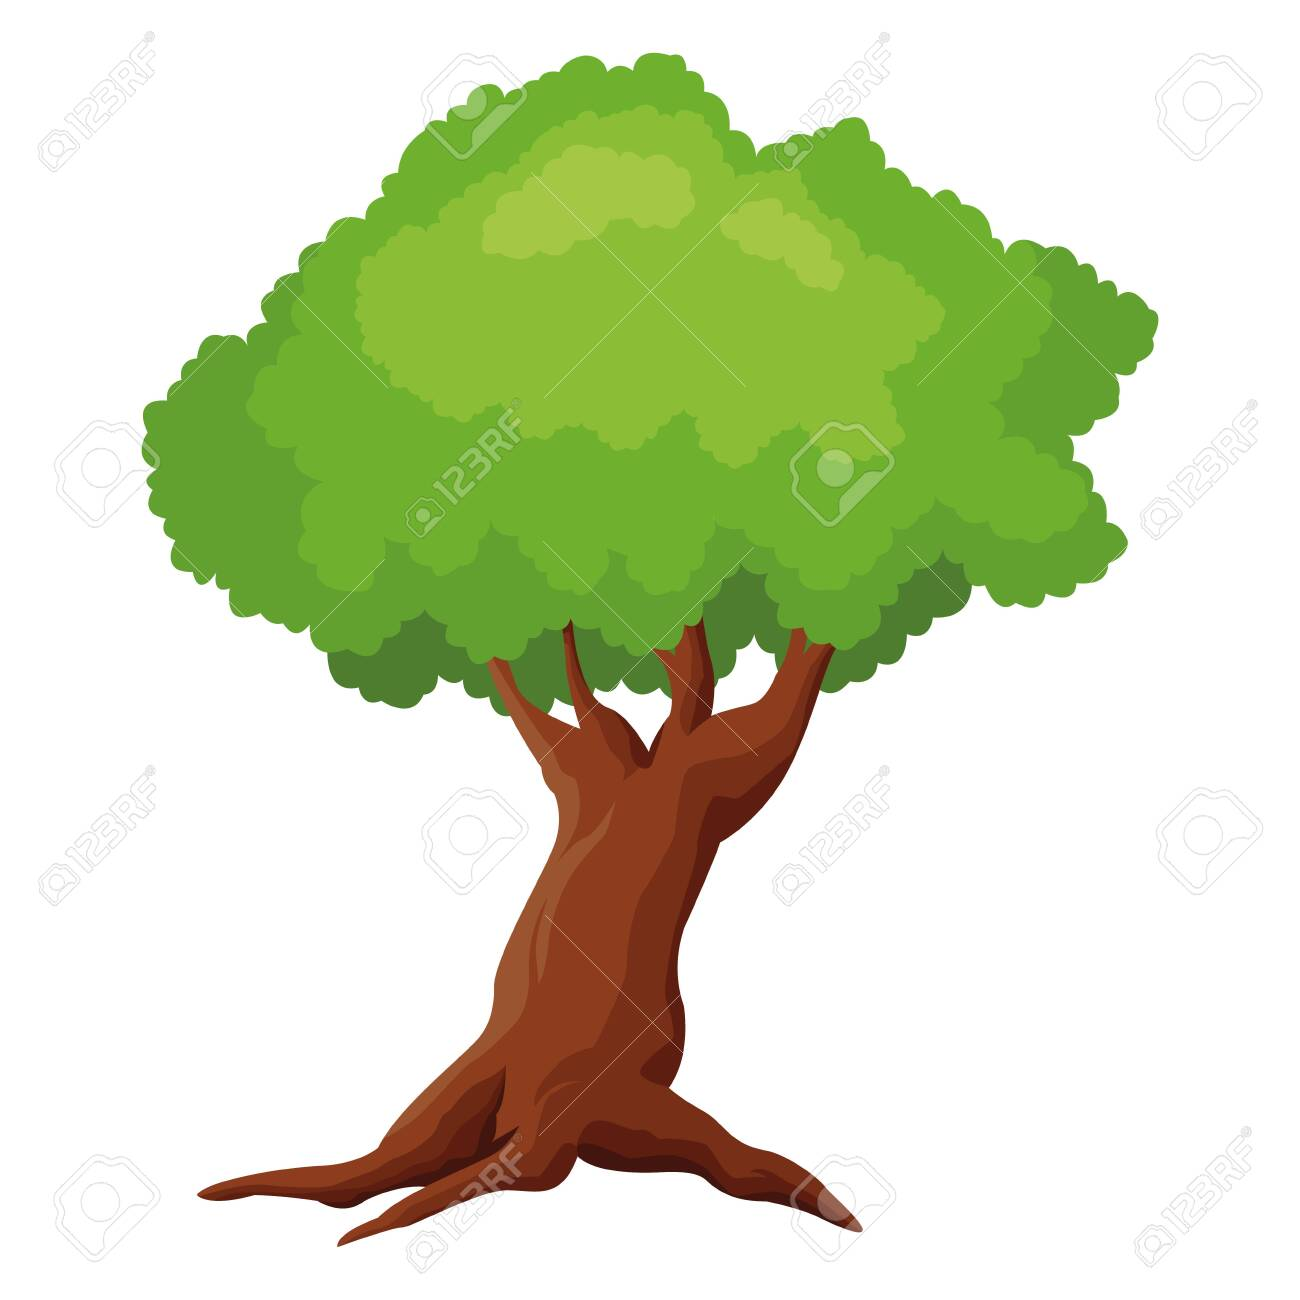 Tree Nature Cartoon Isolated Vector Illustration Graphic Design Royalty Free Cliparts Vectors And Stock Illustration Image 129172886 50,000+ vectors, stock photos & psd files. 123rf com